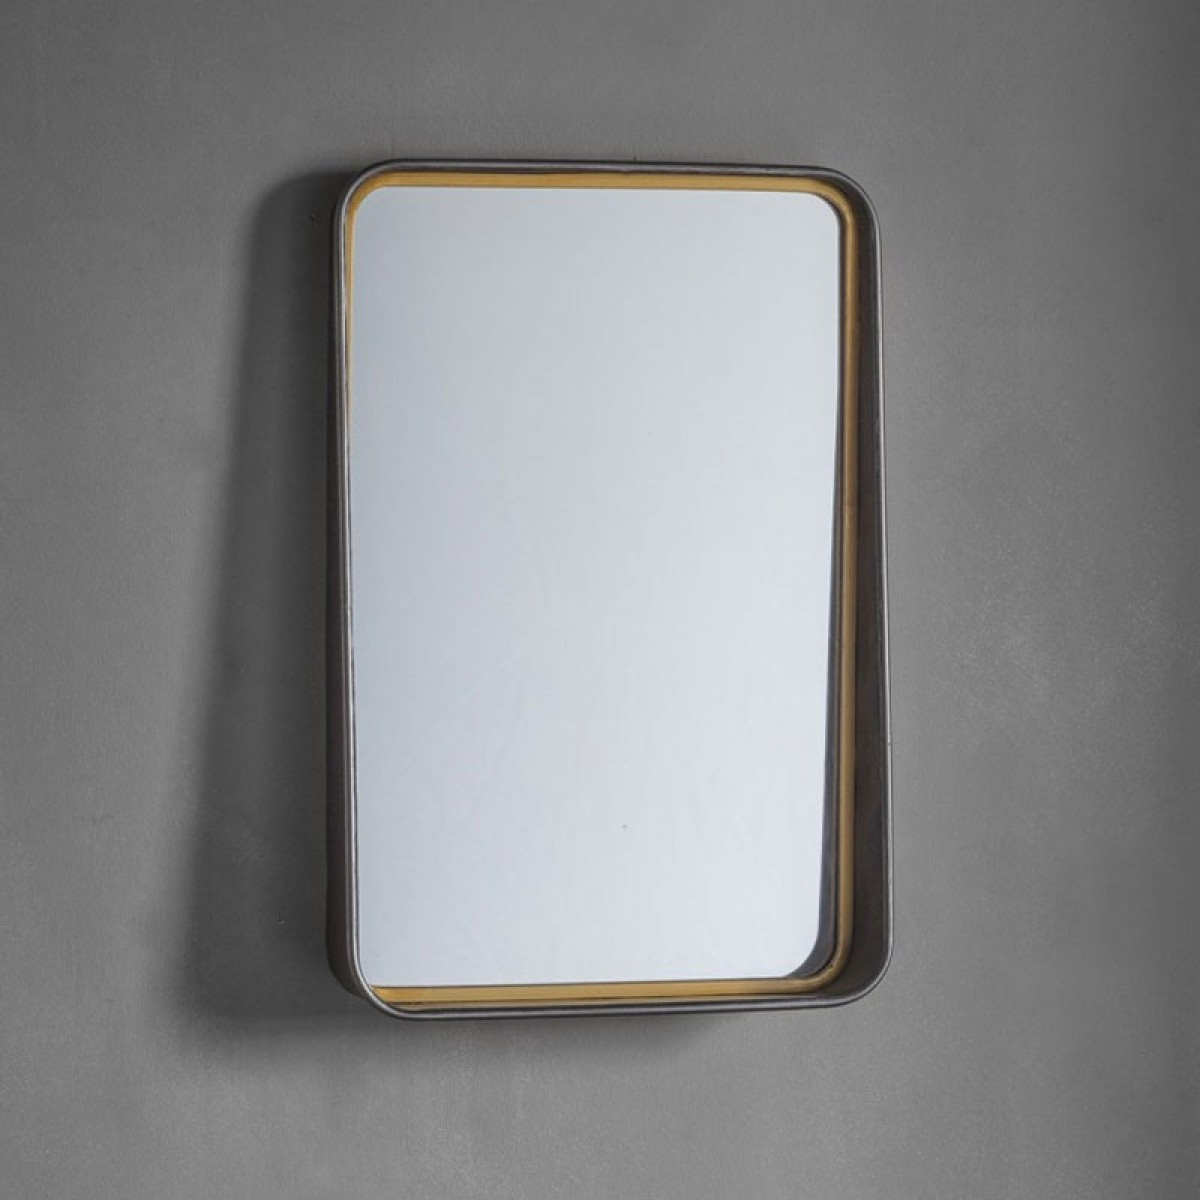 Industrial Framed Wall Mirror – 38 X 57cm Within Most Up To Date Red Framed Wall Mirrors (View 20 of 20)